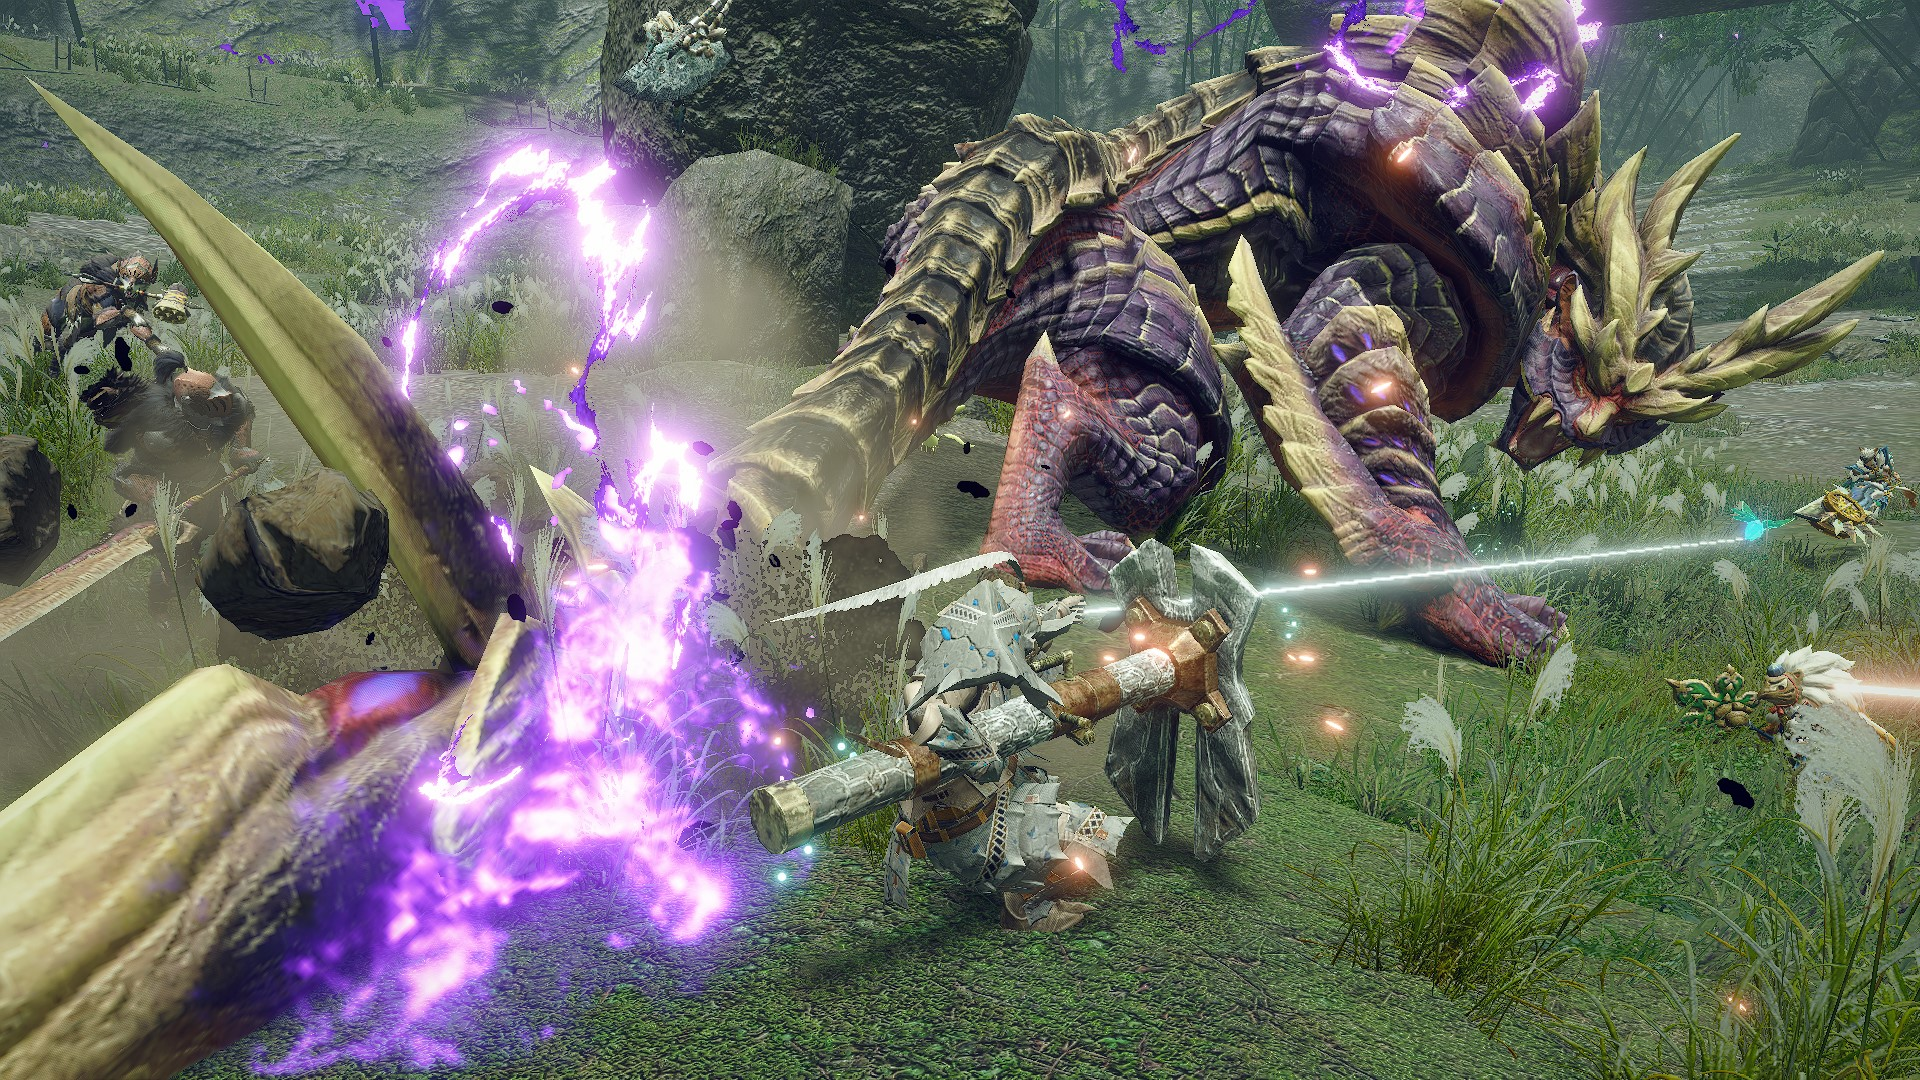 Why Capcom Brought Creepy Spiders Back to Monster Hunter